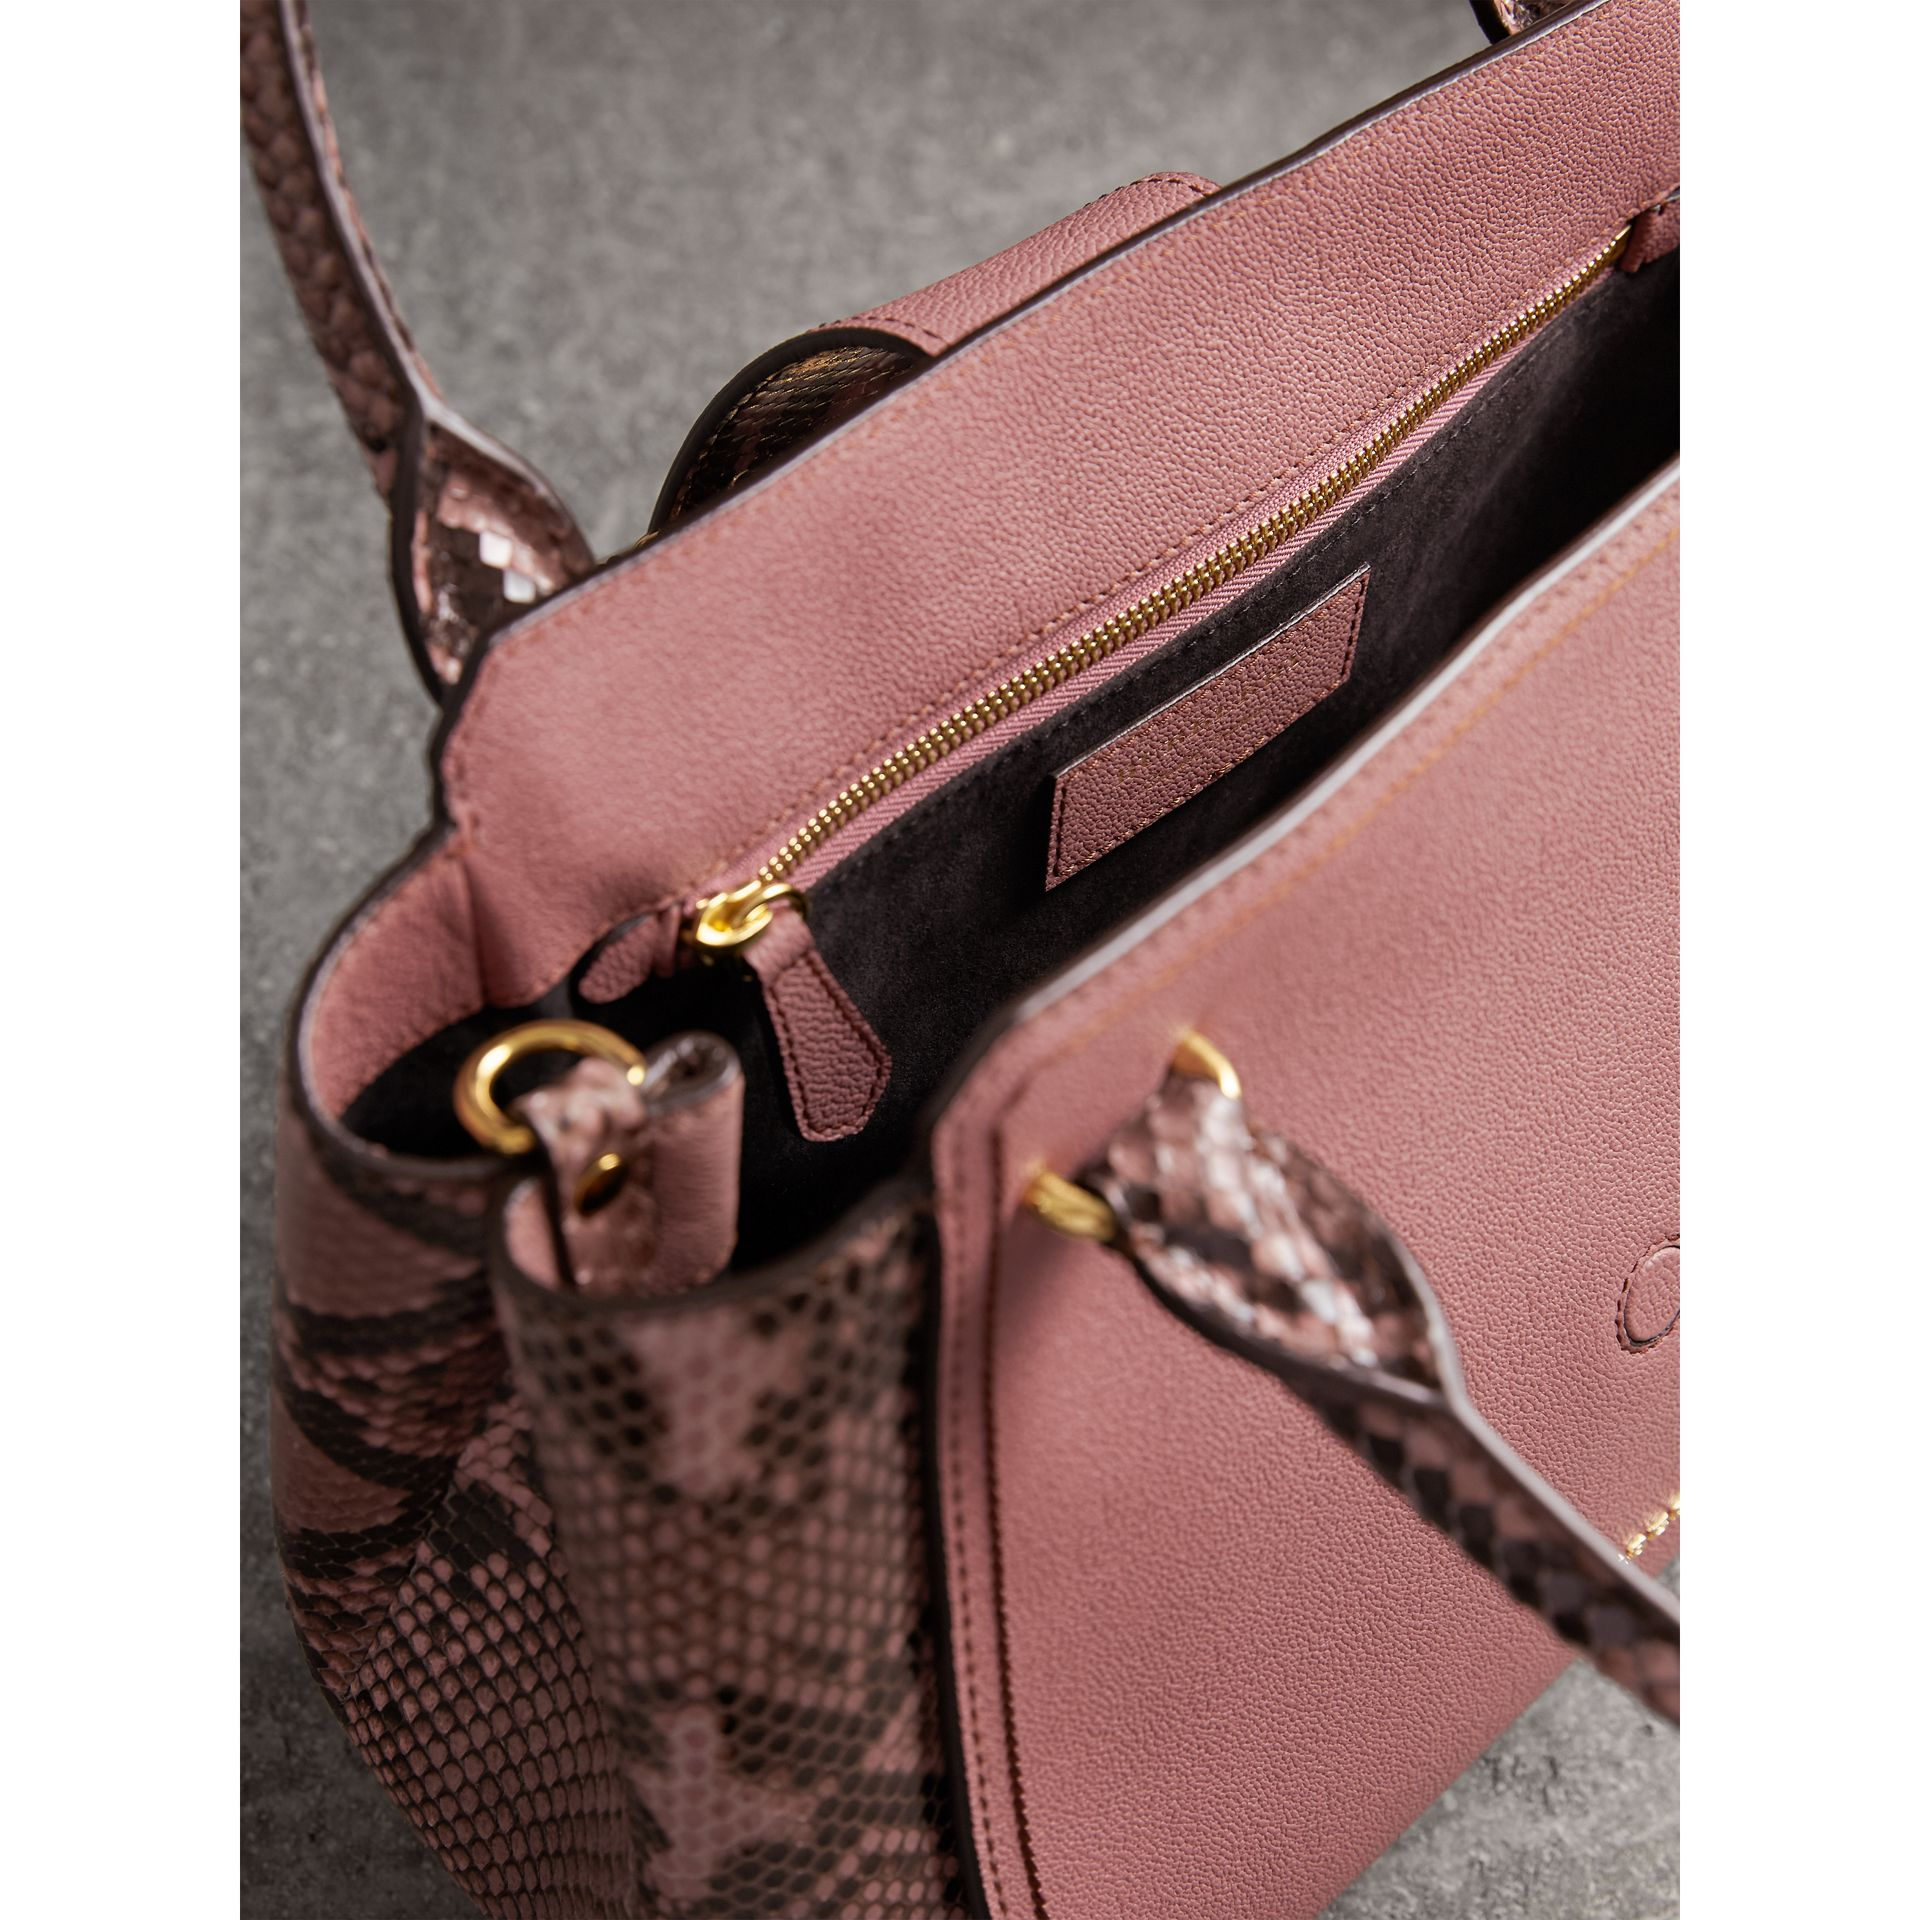 Sac tote The Buckle medium en cuir grainé et python (Rose Cendré) - Femme | Burberry - photo de la galerie 6